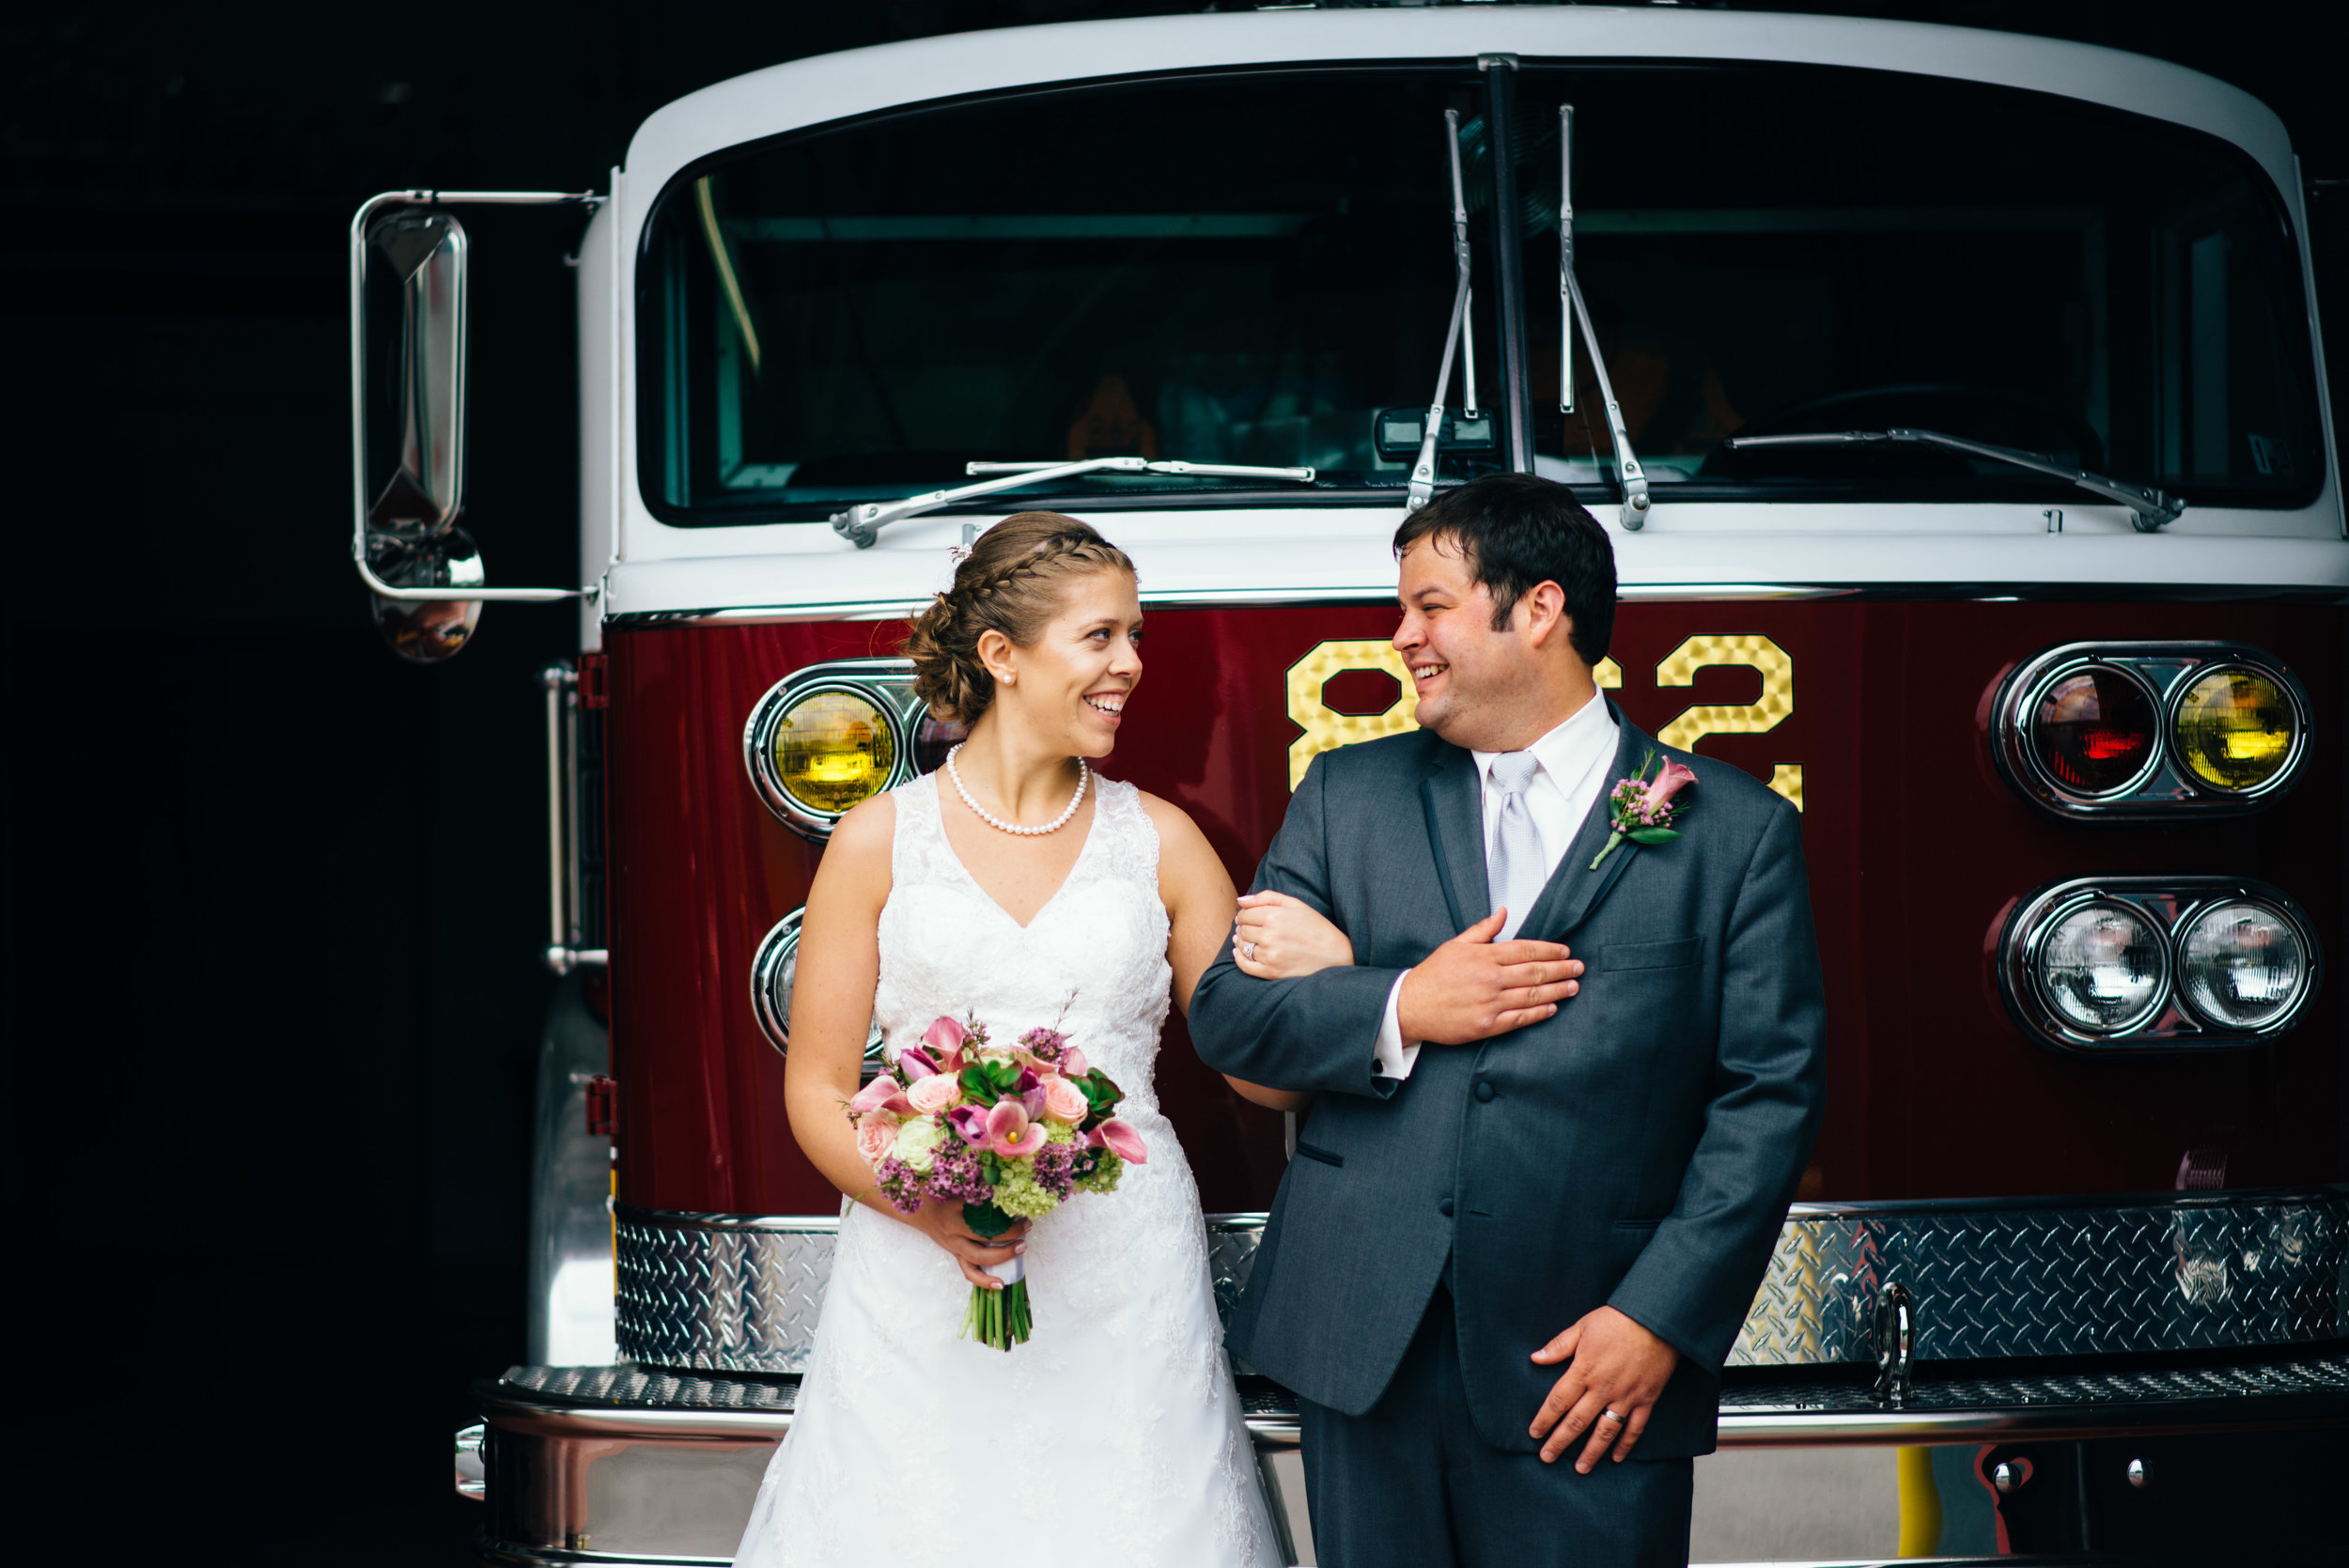 Bride and groom smiling at eachother in front of a vintage 1980's fire truck at the local Summerhill Volunteer Fire Company.